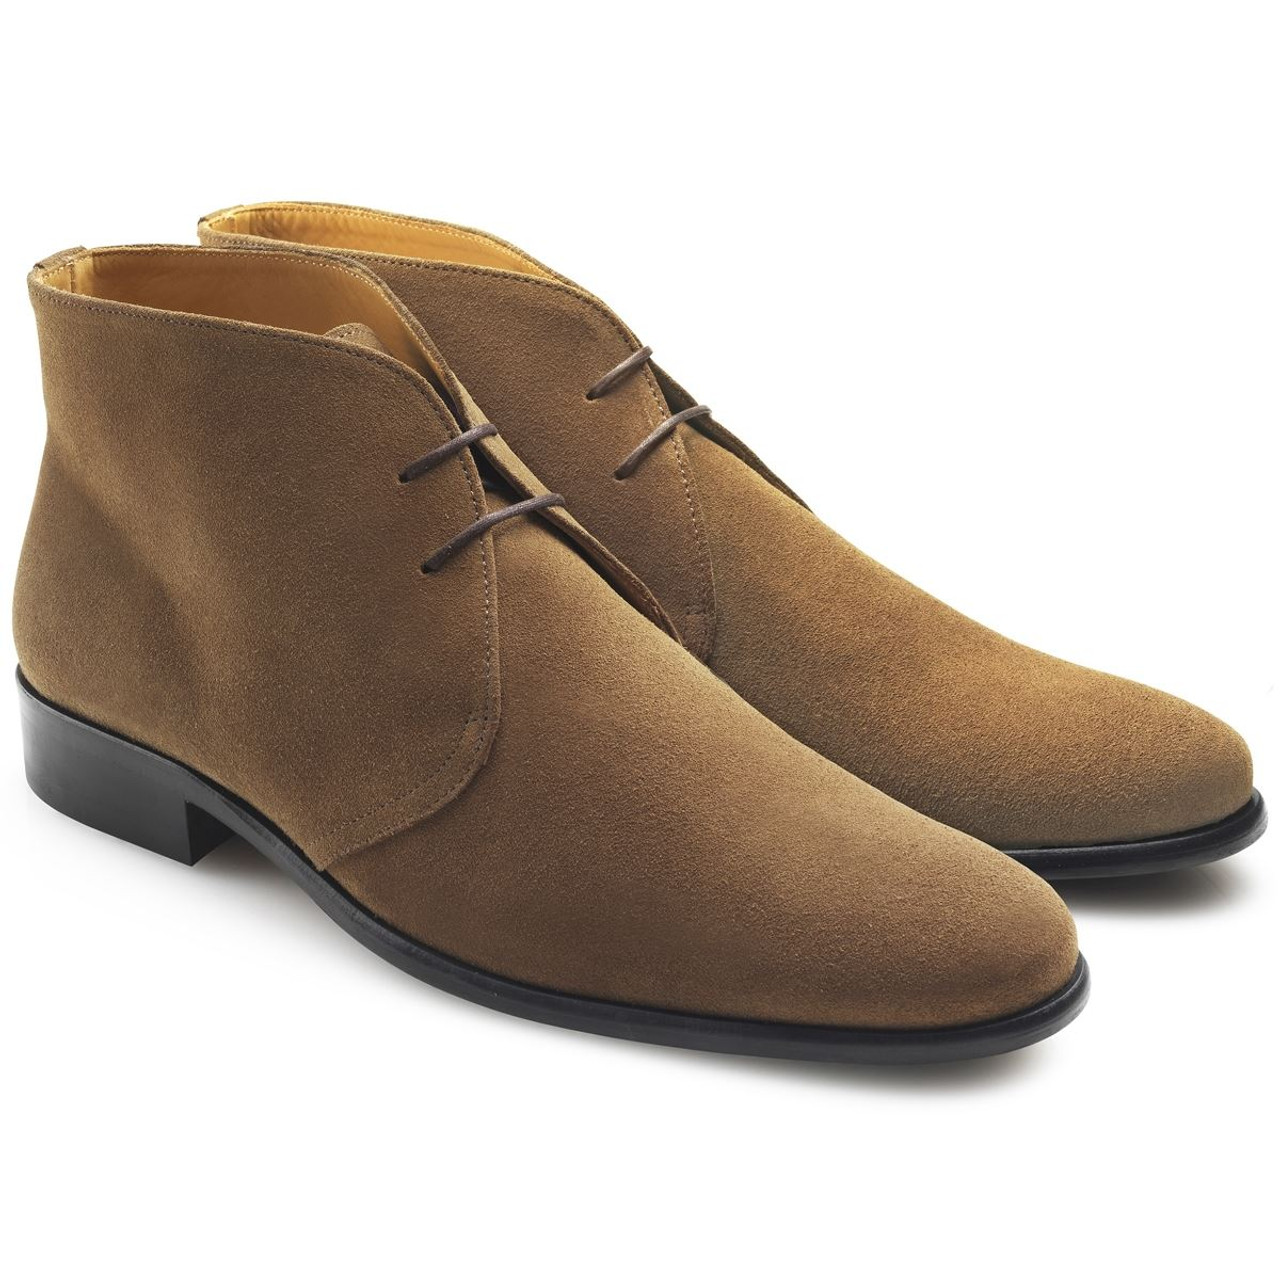 Tan Fairfax & Favor Mens Desert Boot